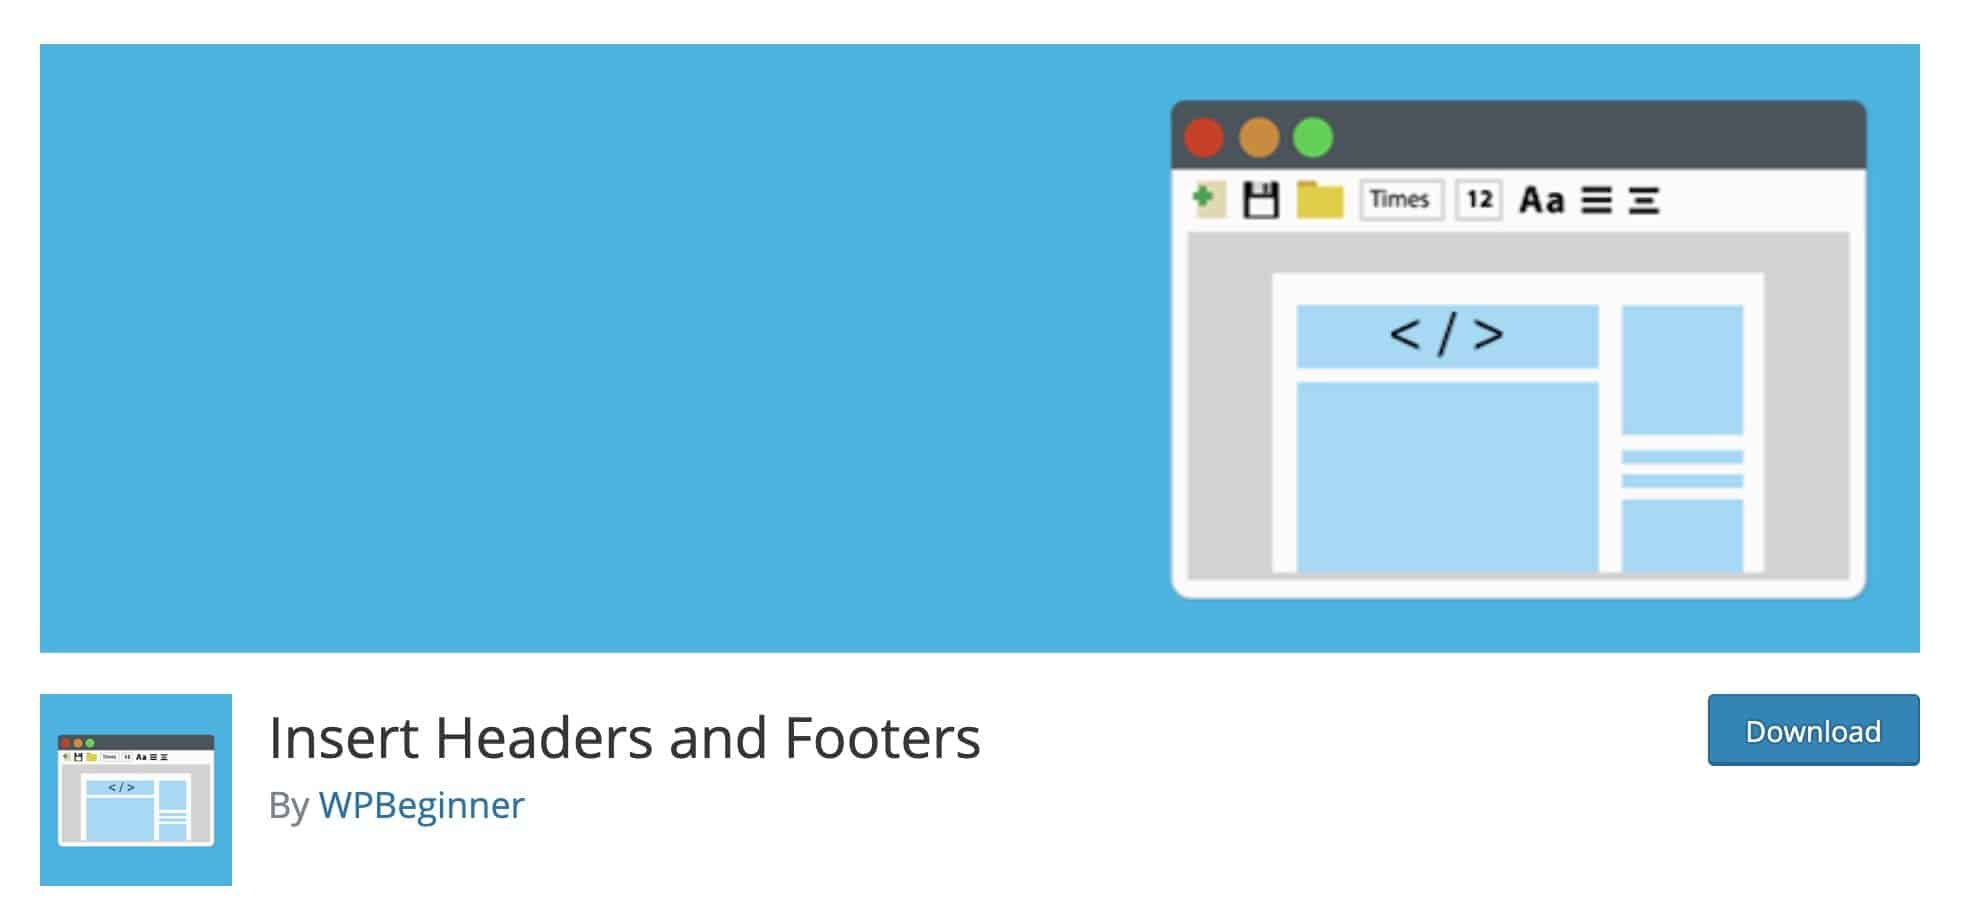 best tools for blogging - insert headers and footers